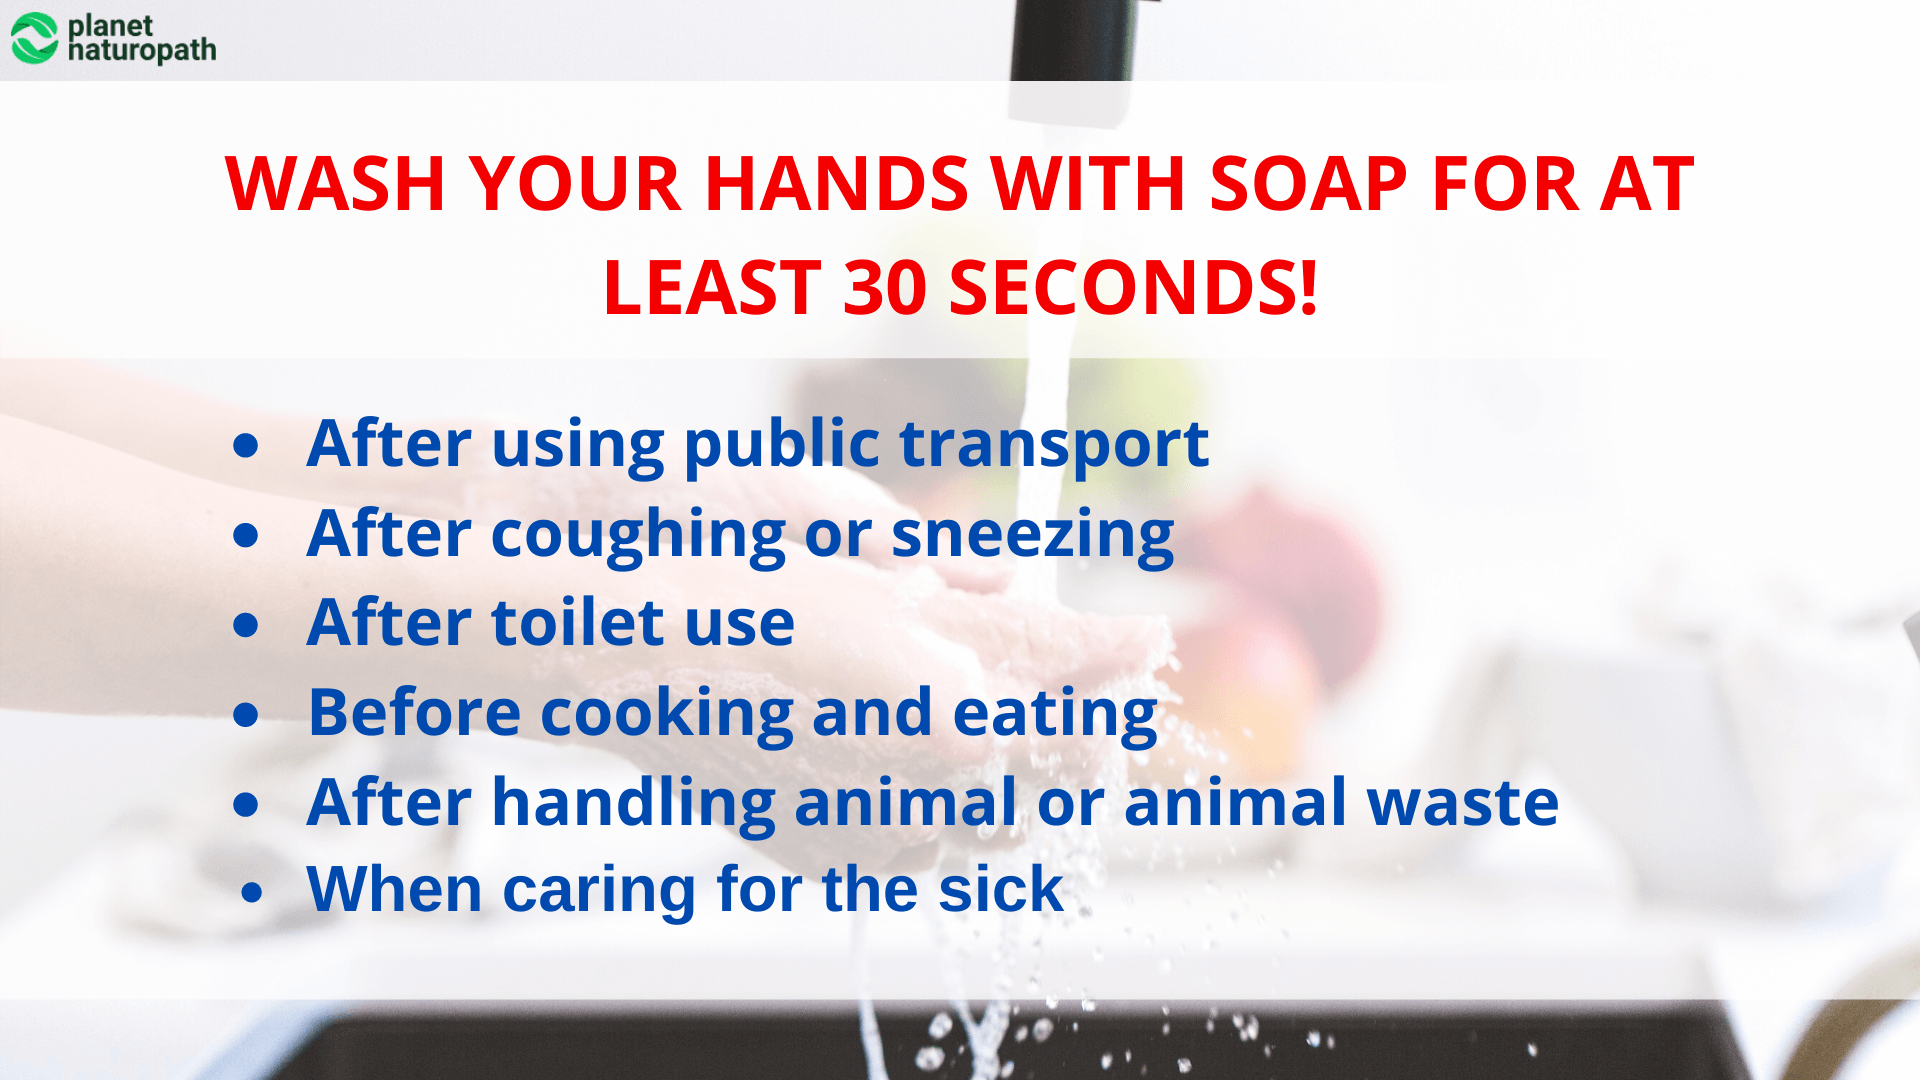 Wash-Your-Hands-With-Soap-For-At-Least-30-Seconds